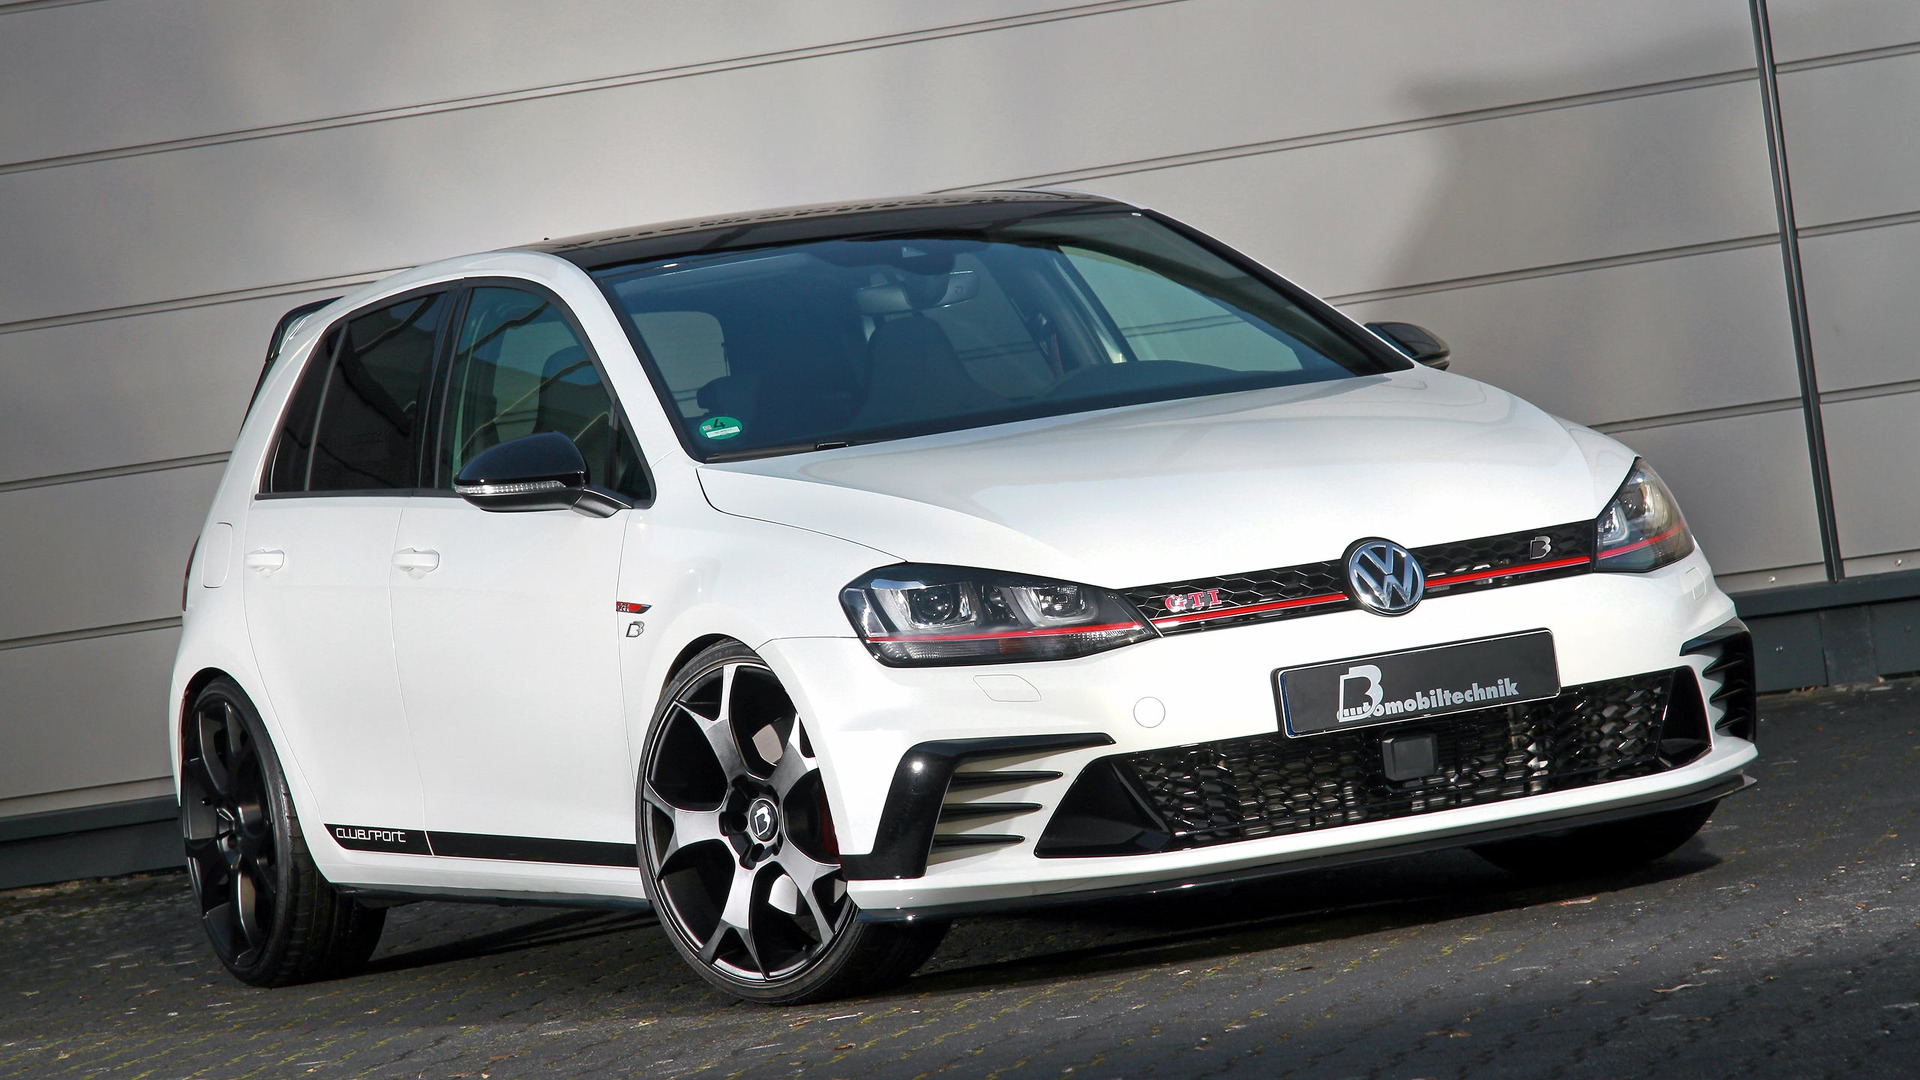 VW_Golf_GTI_Clubsport_S_by_B&B_Automobiltechnik_12